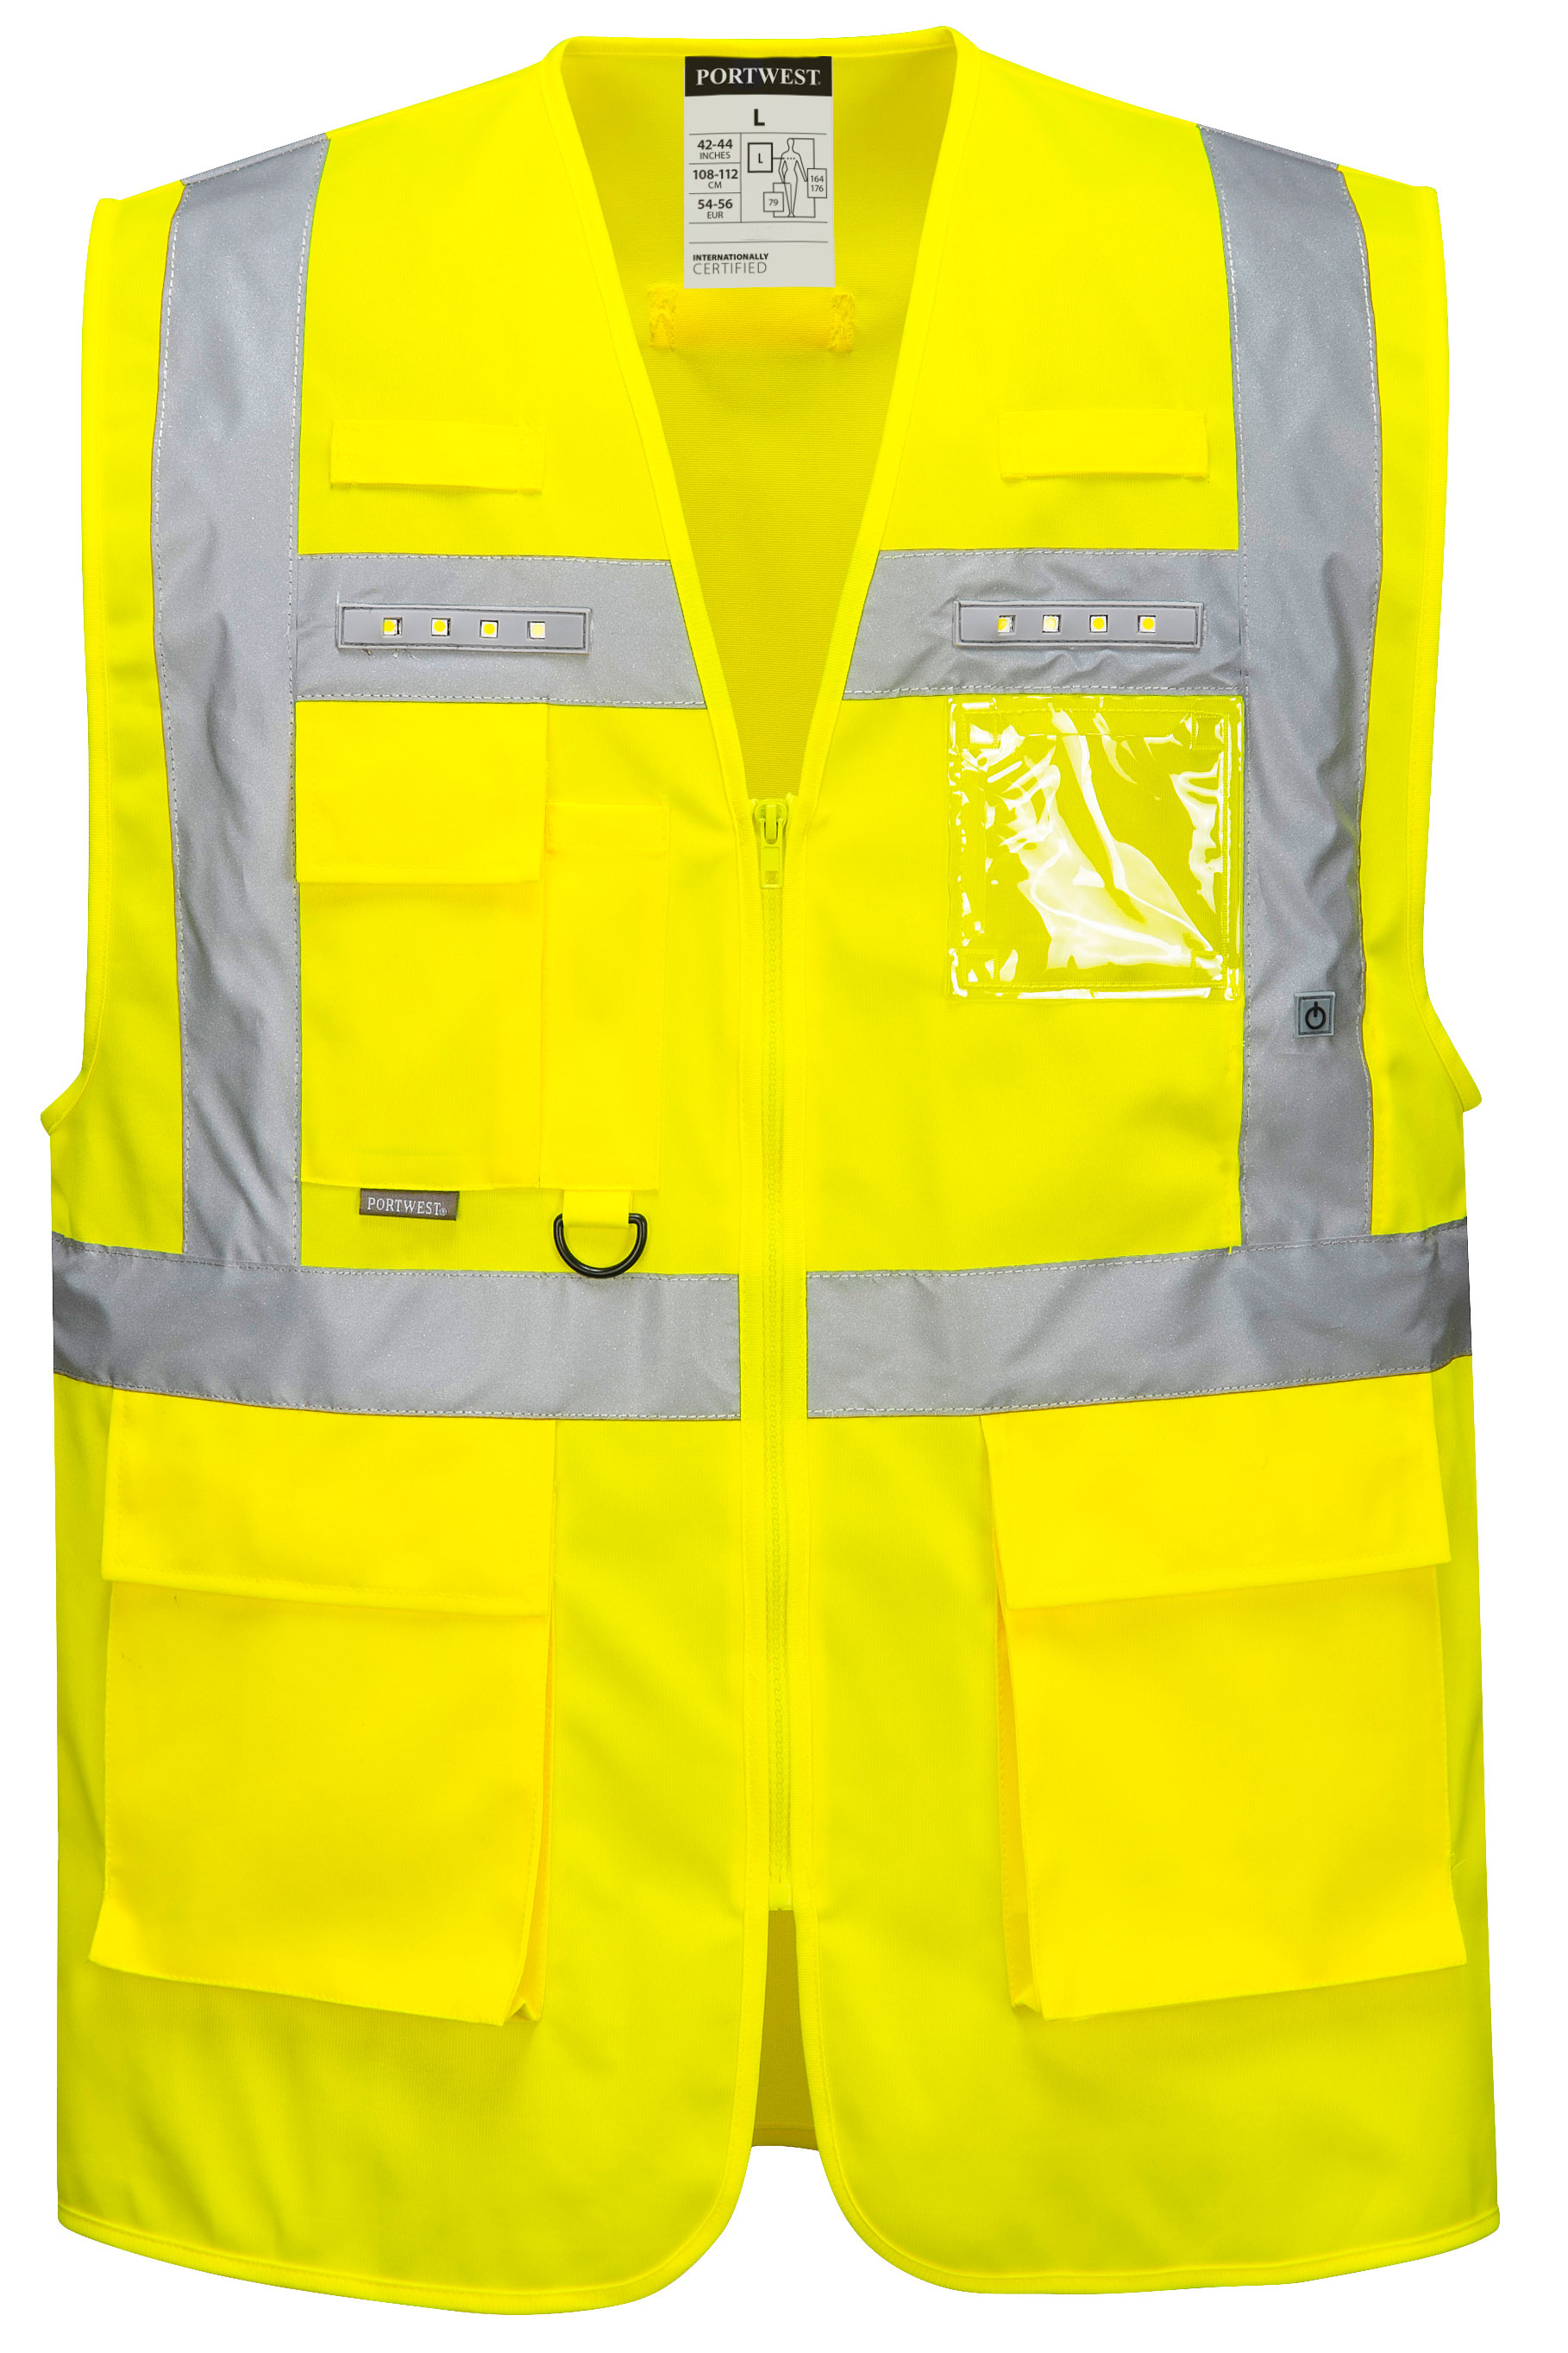 FLAME RESISTANT COVERALLS ENHANCED HI VISIBILITY REFLECTIVE SAFETY SZ 56 3XL